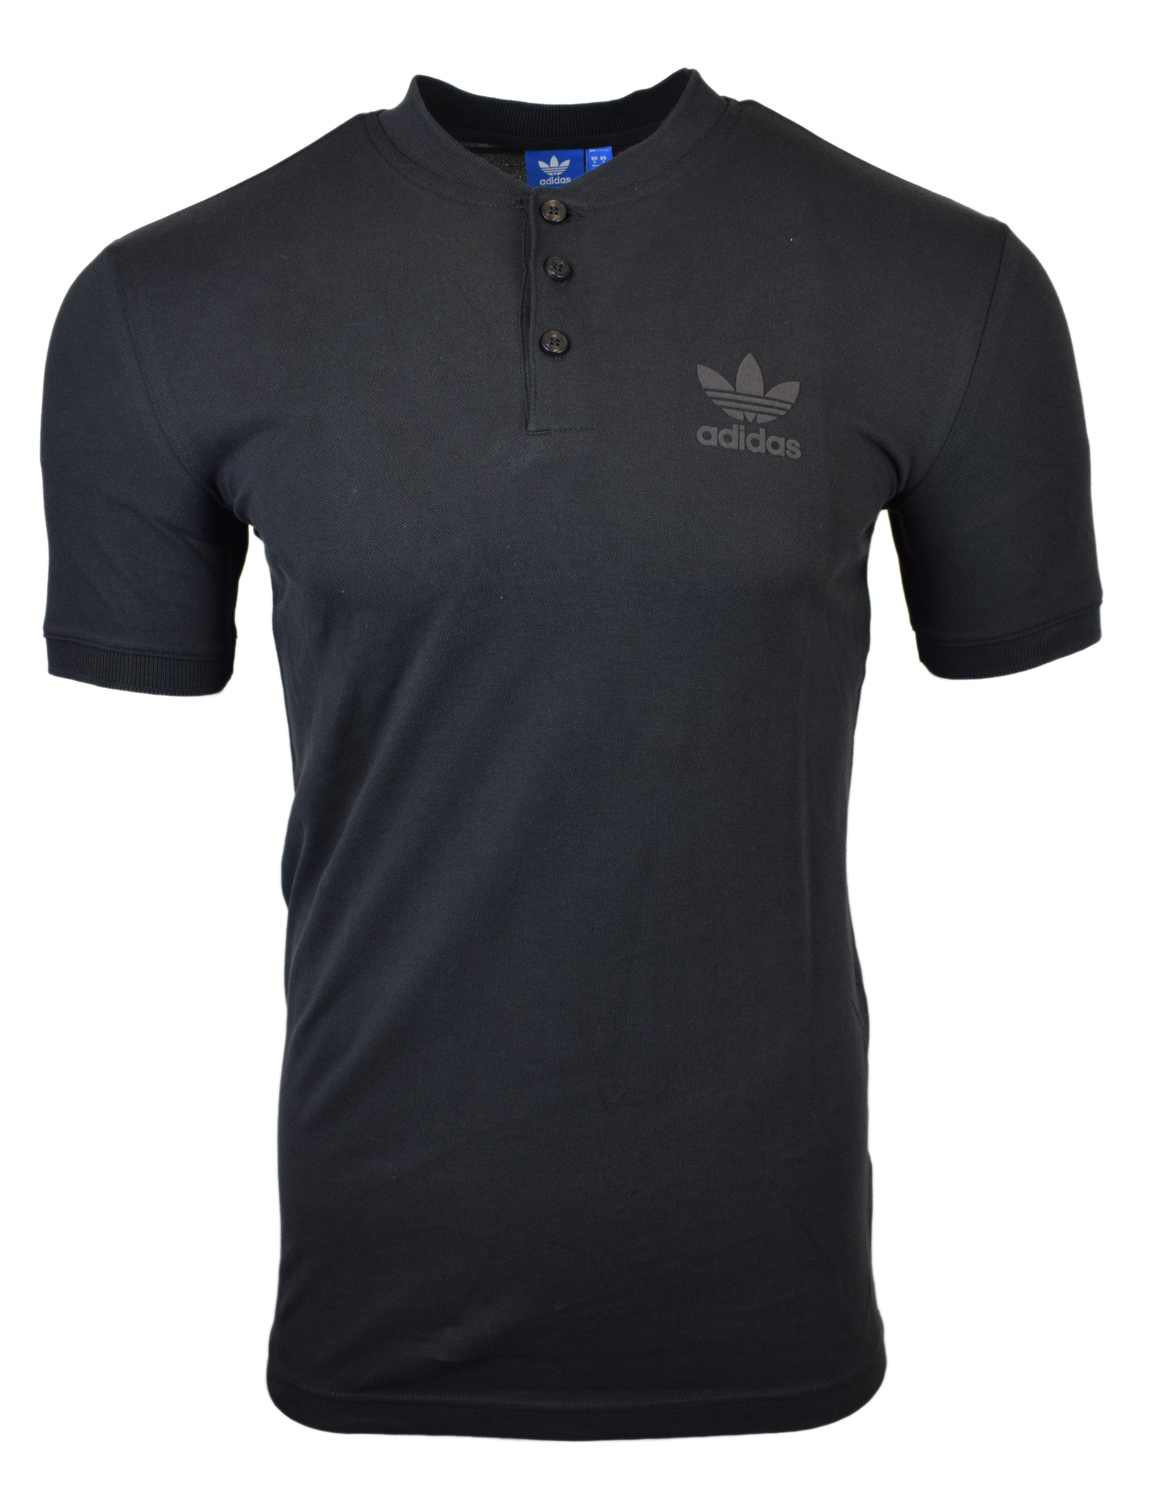 Adidas Originals Winter Winter Winter Sort D Polo Shirt BS2698 eBay b1ce3d